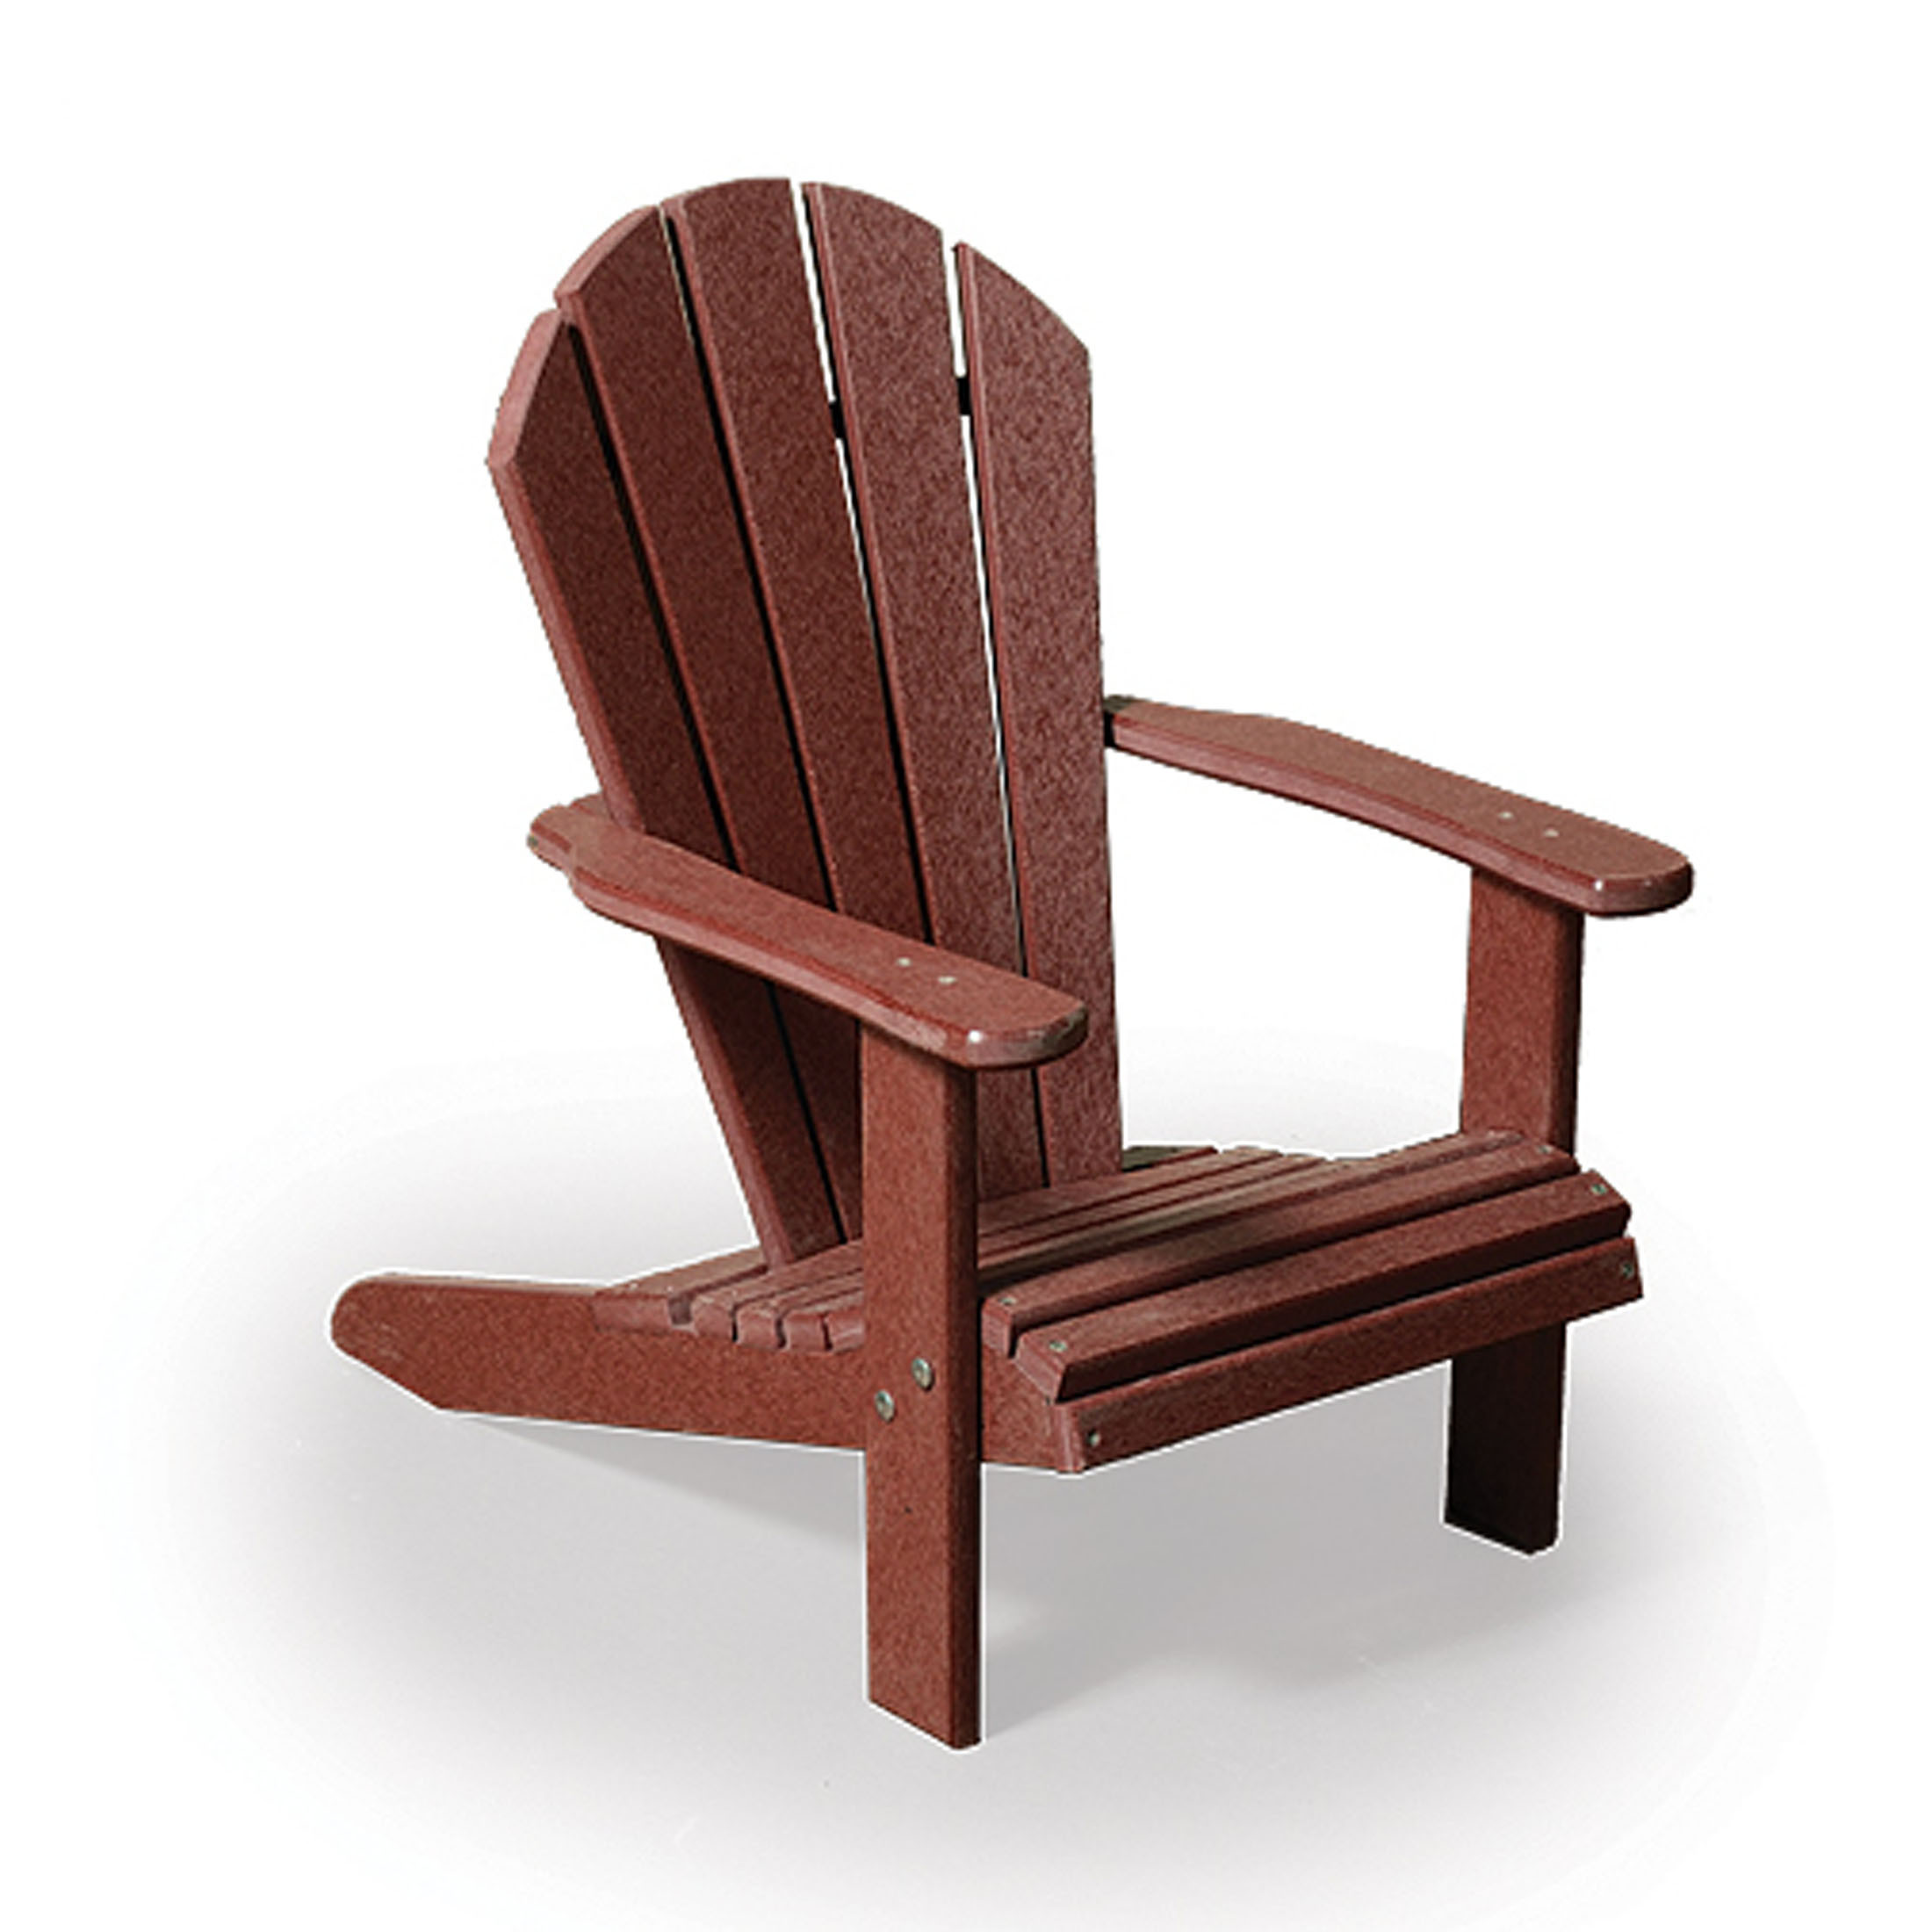 Amish Poly SeaAira Child's Adirondack Chair